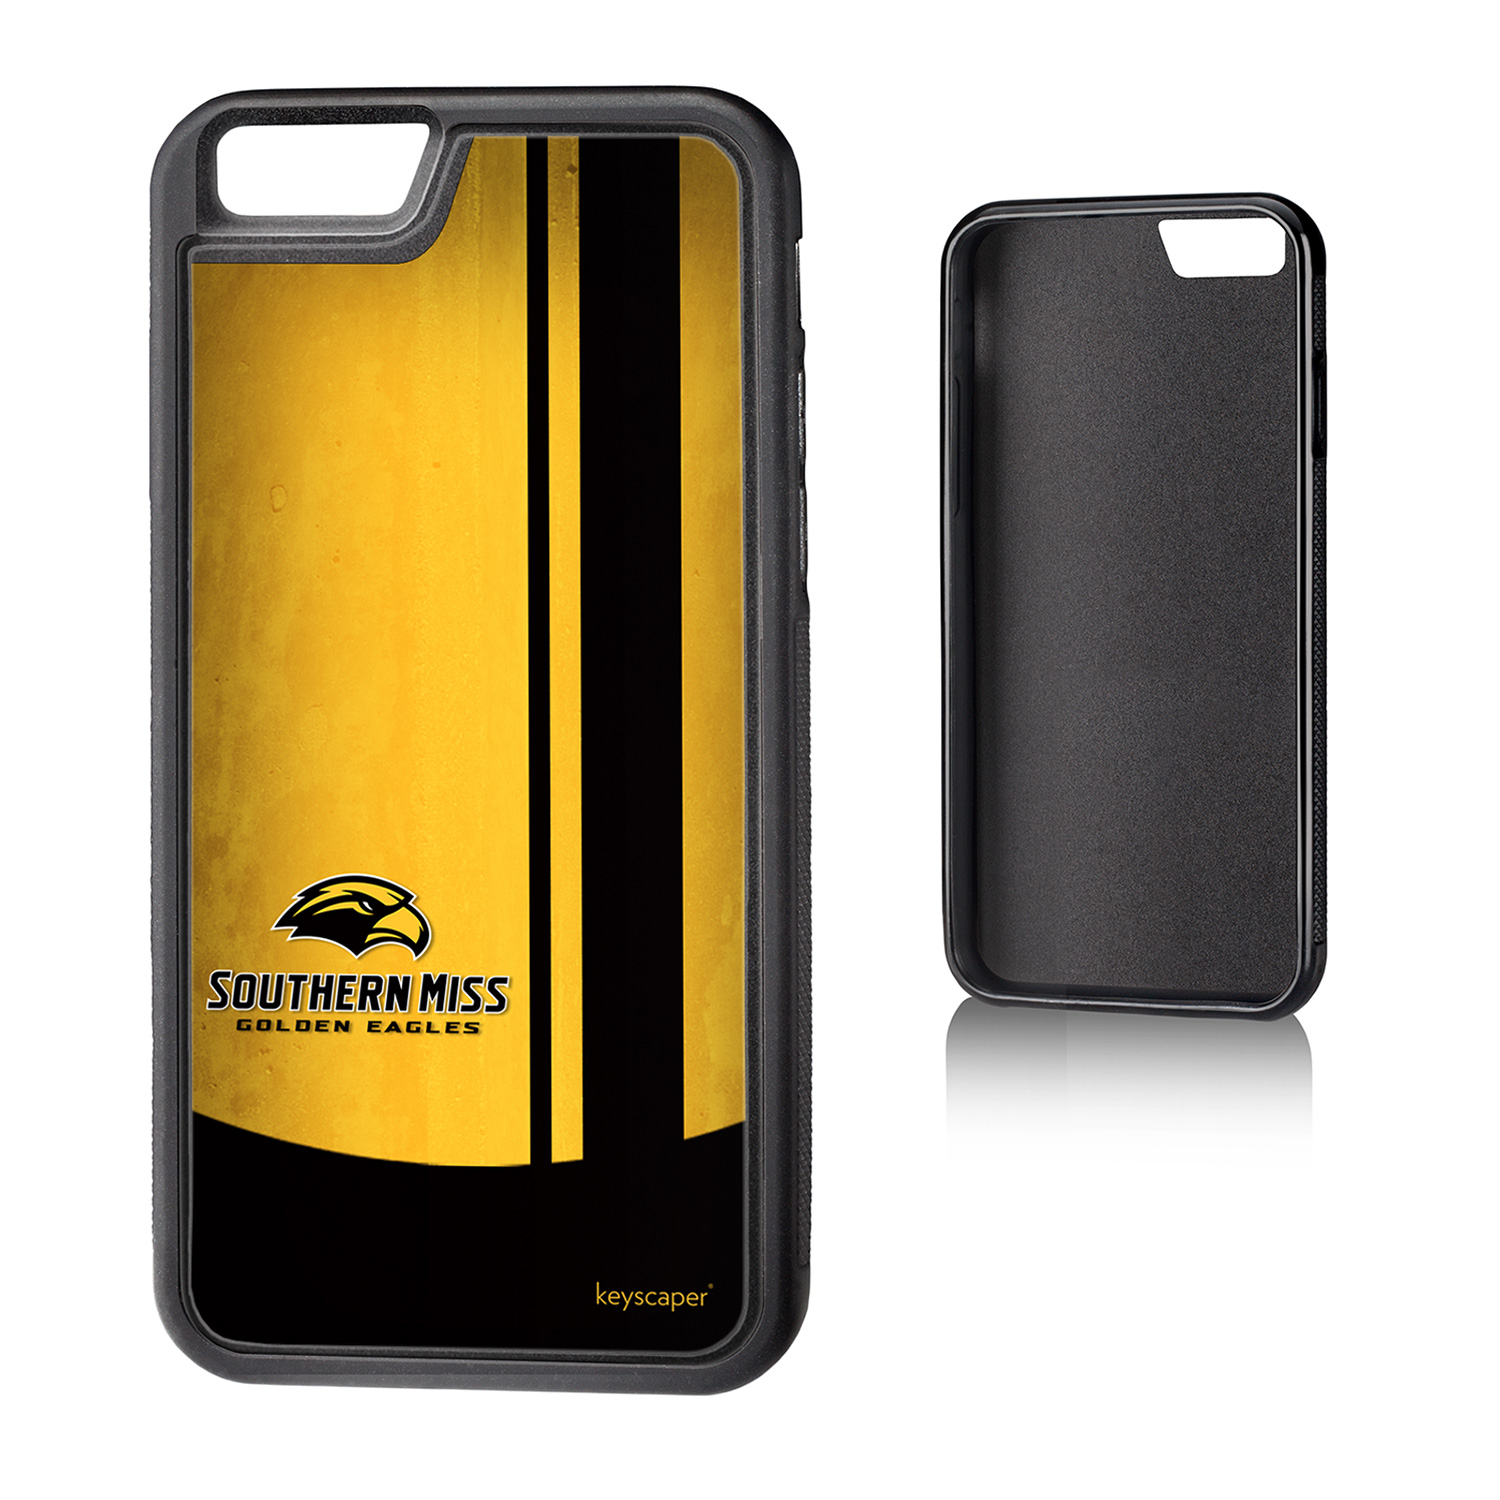 Southern Mississippi Golden Eagles iPhone 6 (4.7 inch) Bumper Case